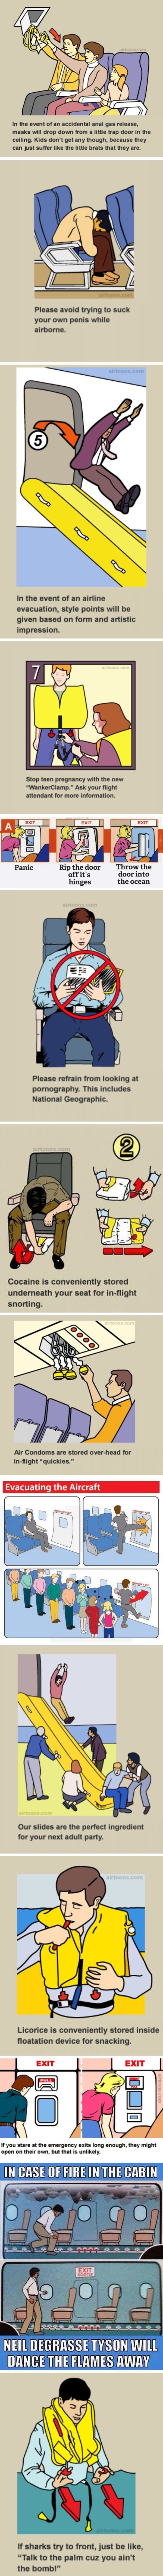 Hilarious airline safety cards that you shouldn't follow